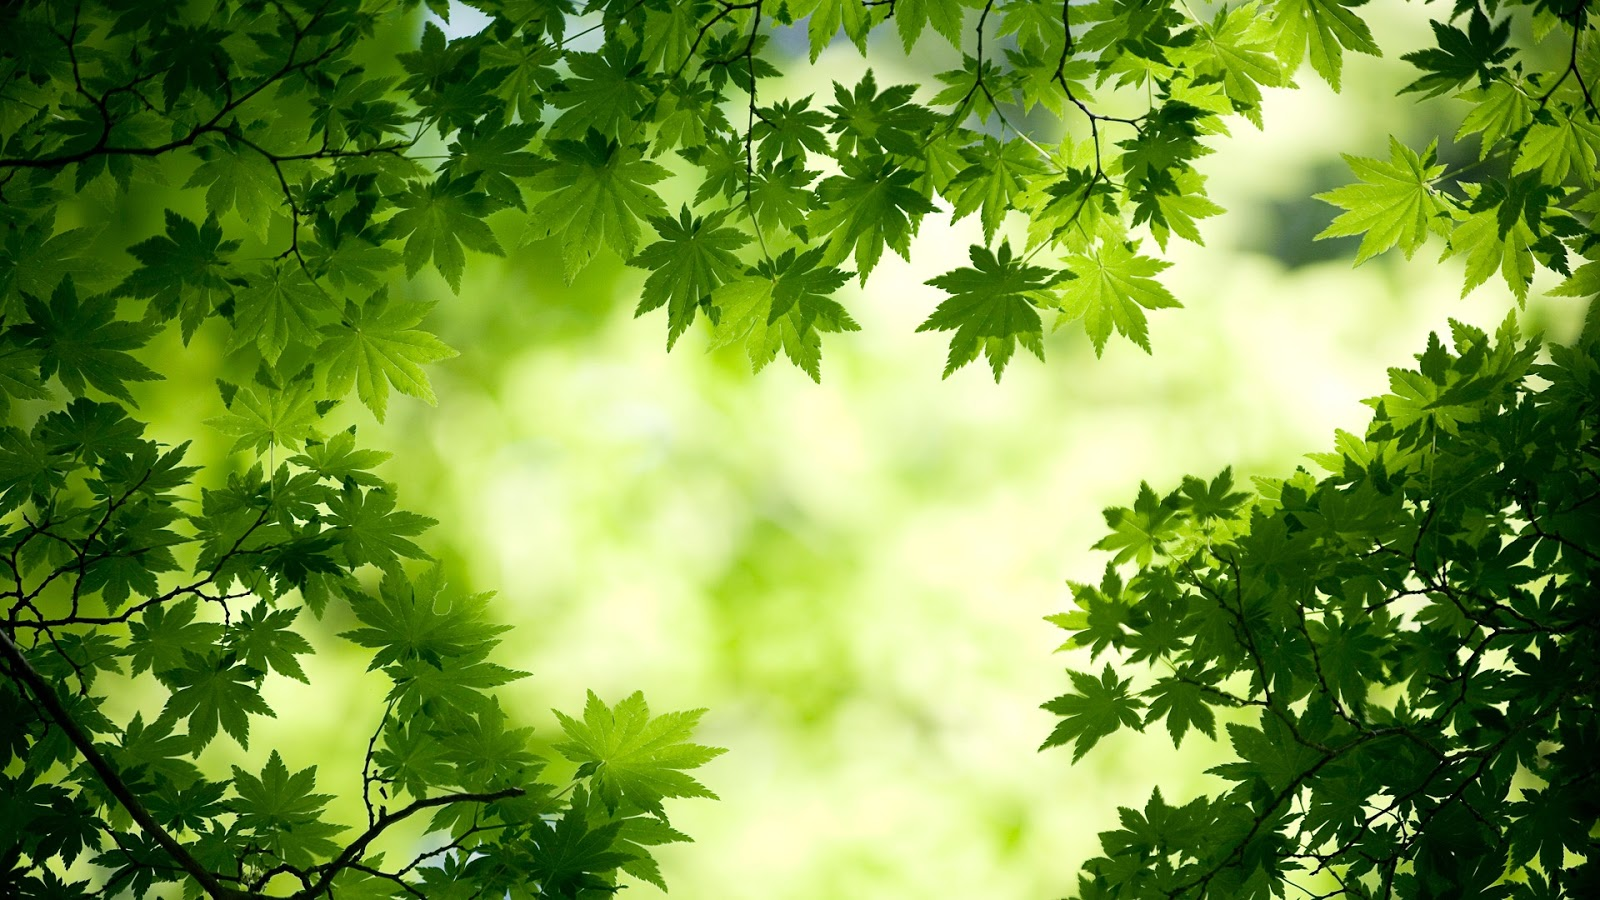 http://2.bp.blogspot.com/-4GbgQH76IkM/UKkOmNZf0tI/AAAAAAAAAw0/C8Nv3ZhjgPw/s1600/green_maple_leaves-1920x1080.jpg